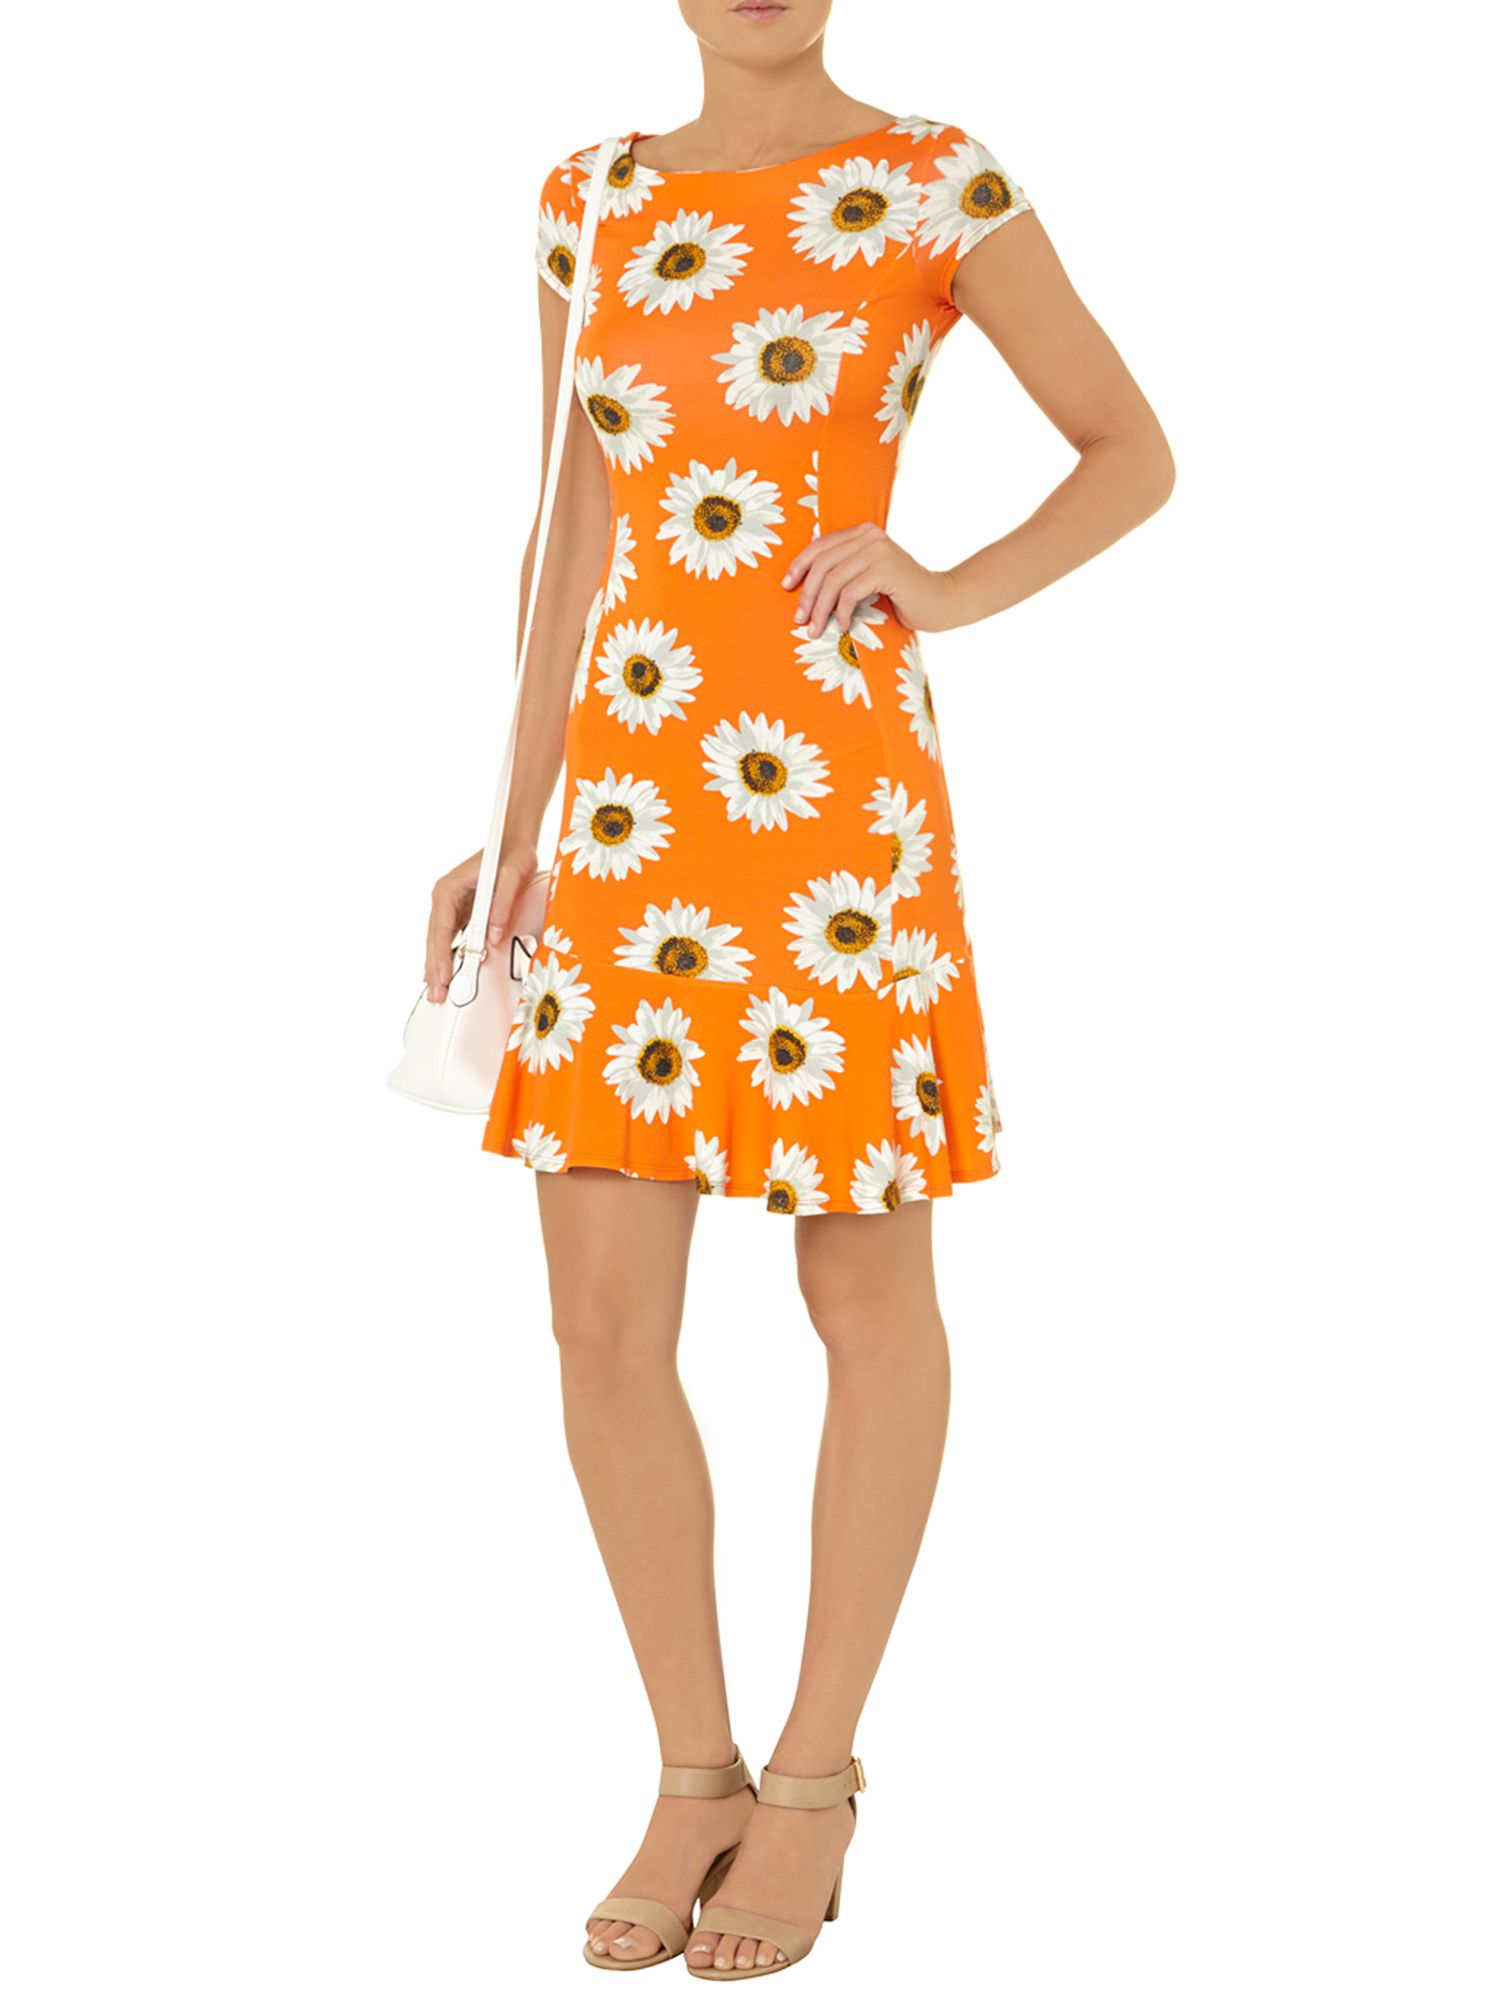 Daisy jersey pephem dress